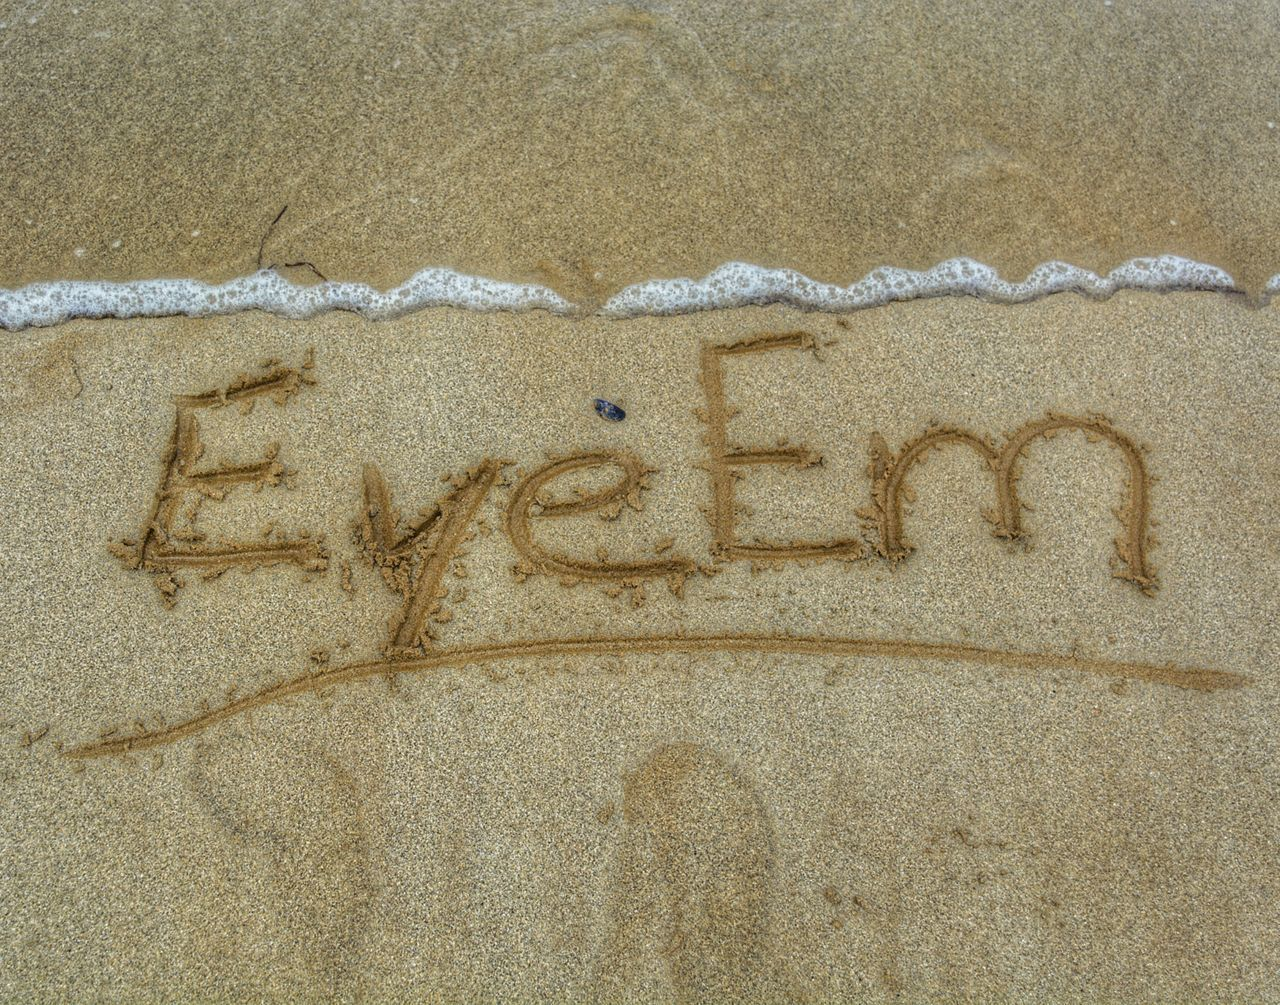 sand, beach, text, single word, communication, message, no people, day, outdoors, nature, close-up